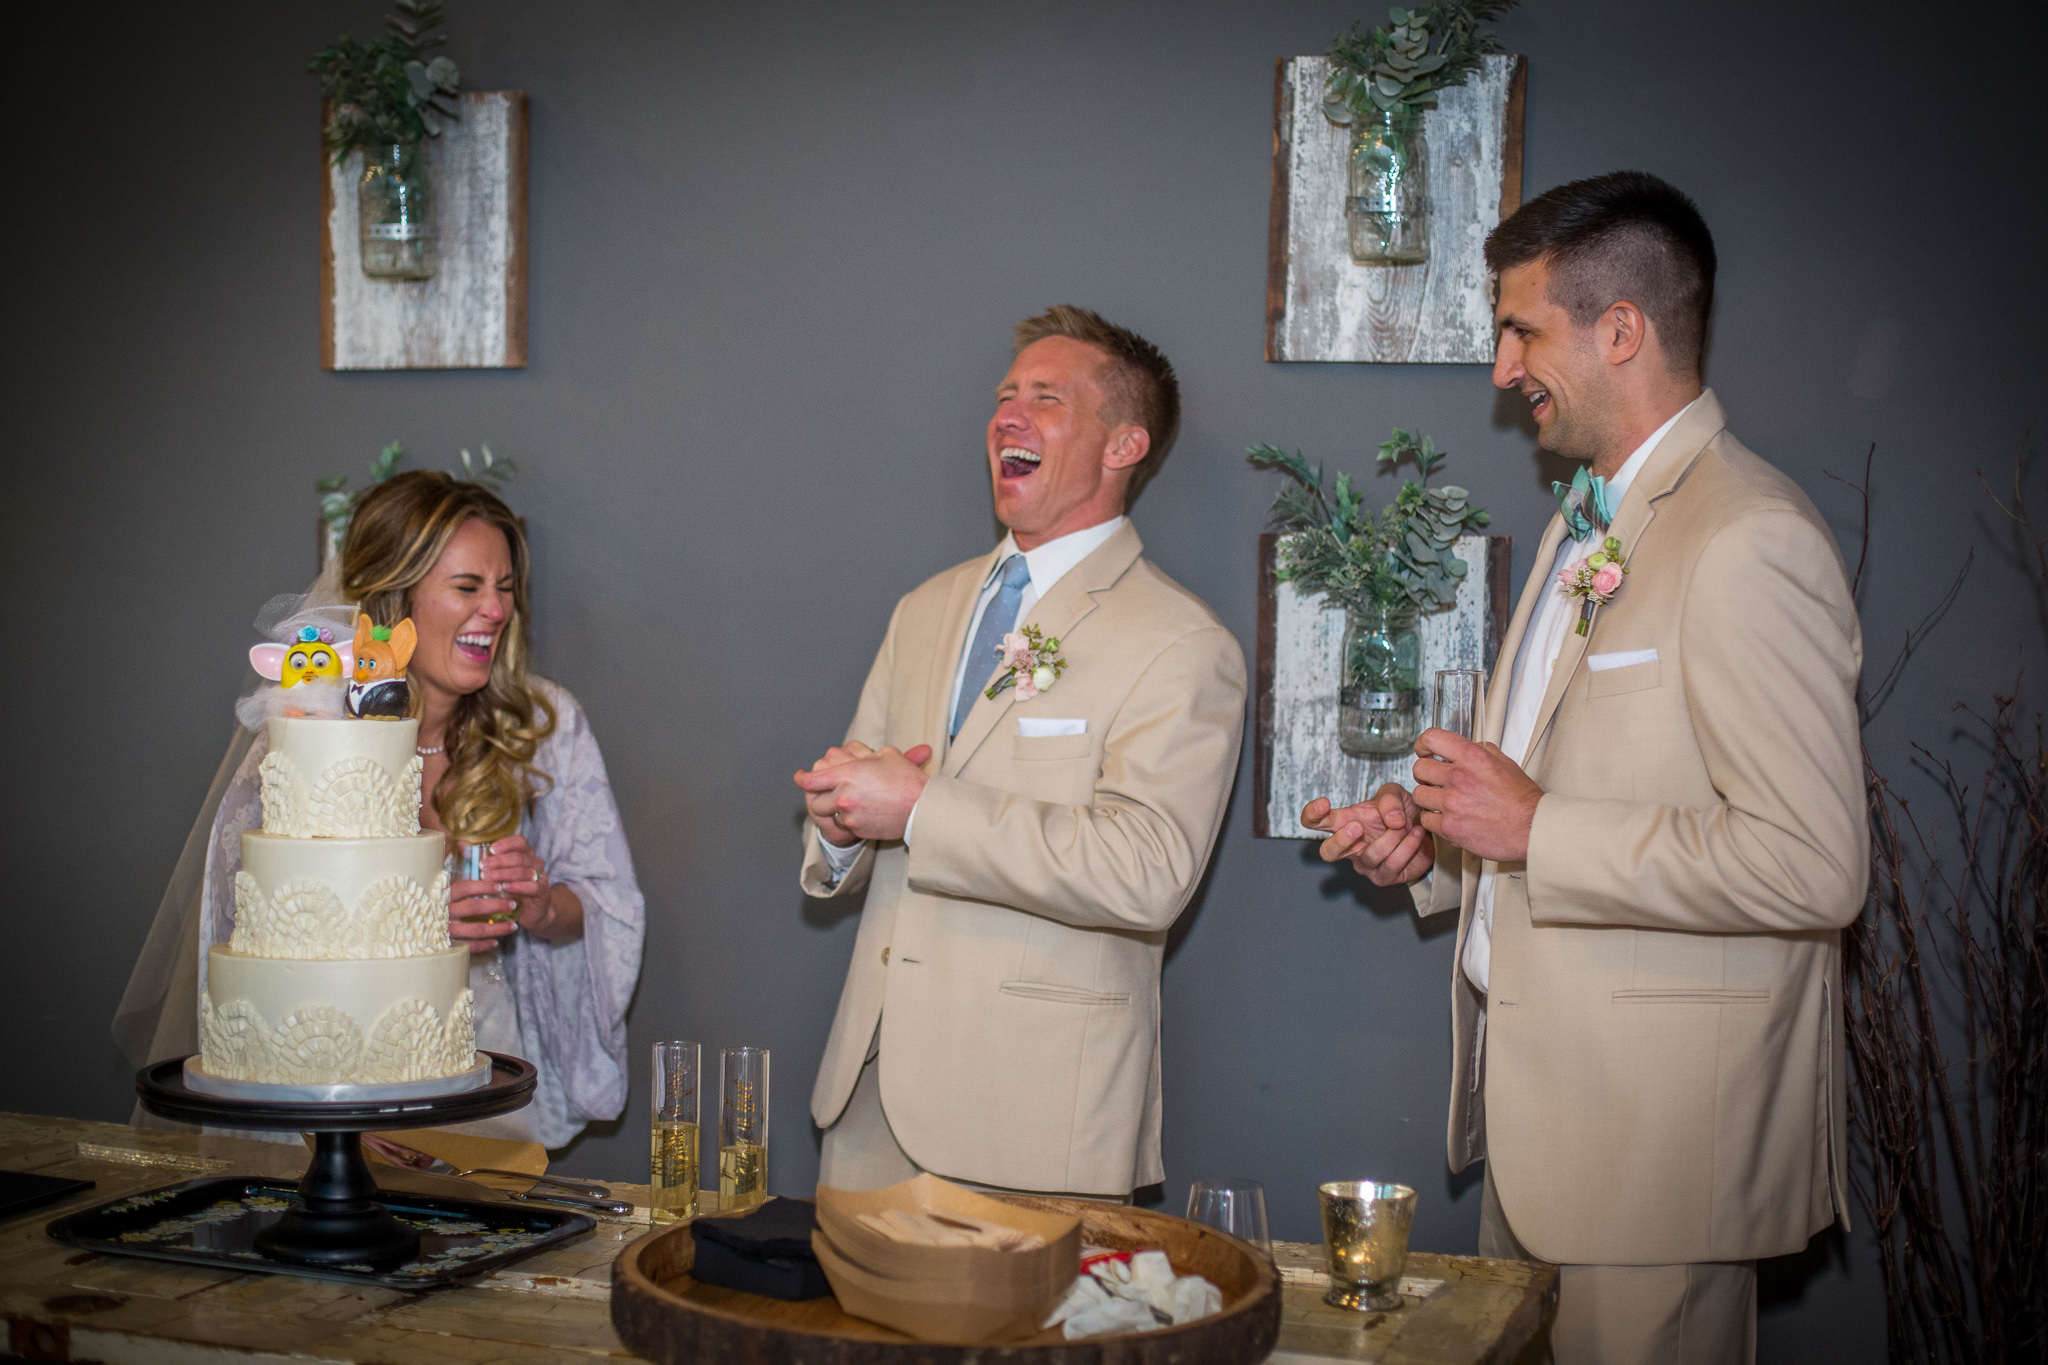 Wedding_Day_Moments_To_Do_List_Megan & Jeff-204.jpg